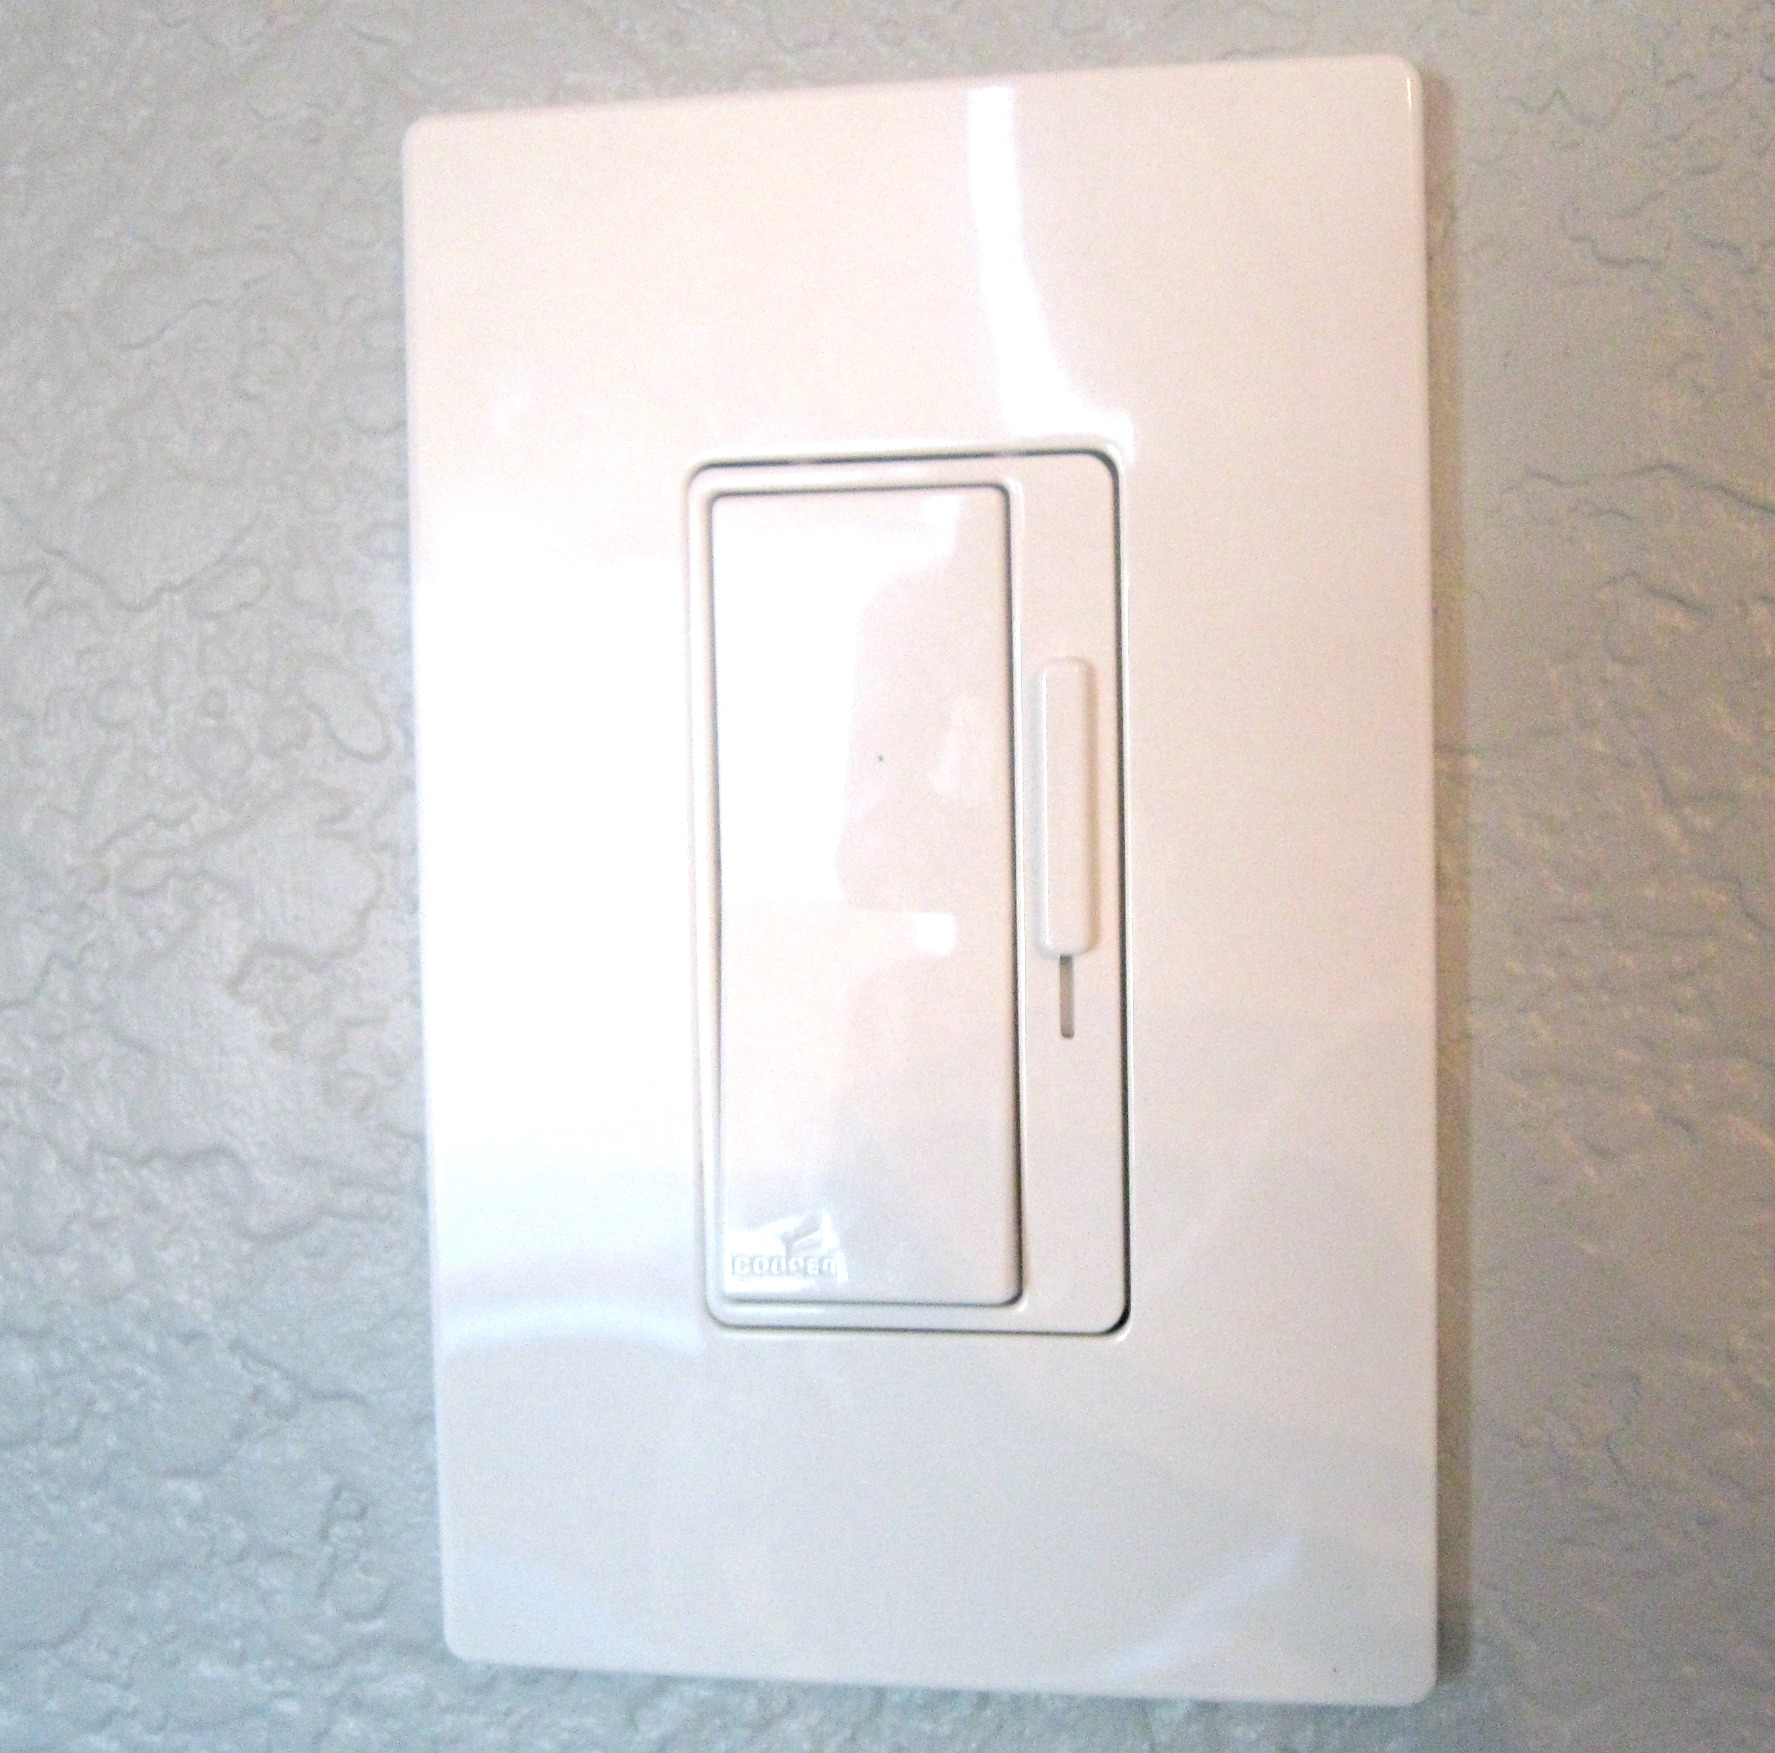 light switch dimmer this dimmer is great. Black Bedroom Furniture Sets. Home Design Ideas